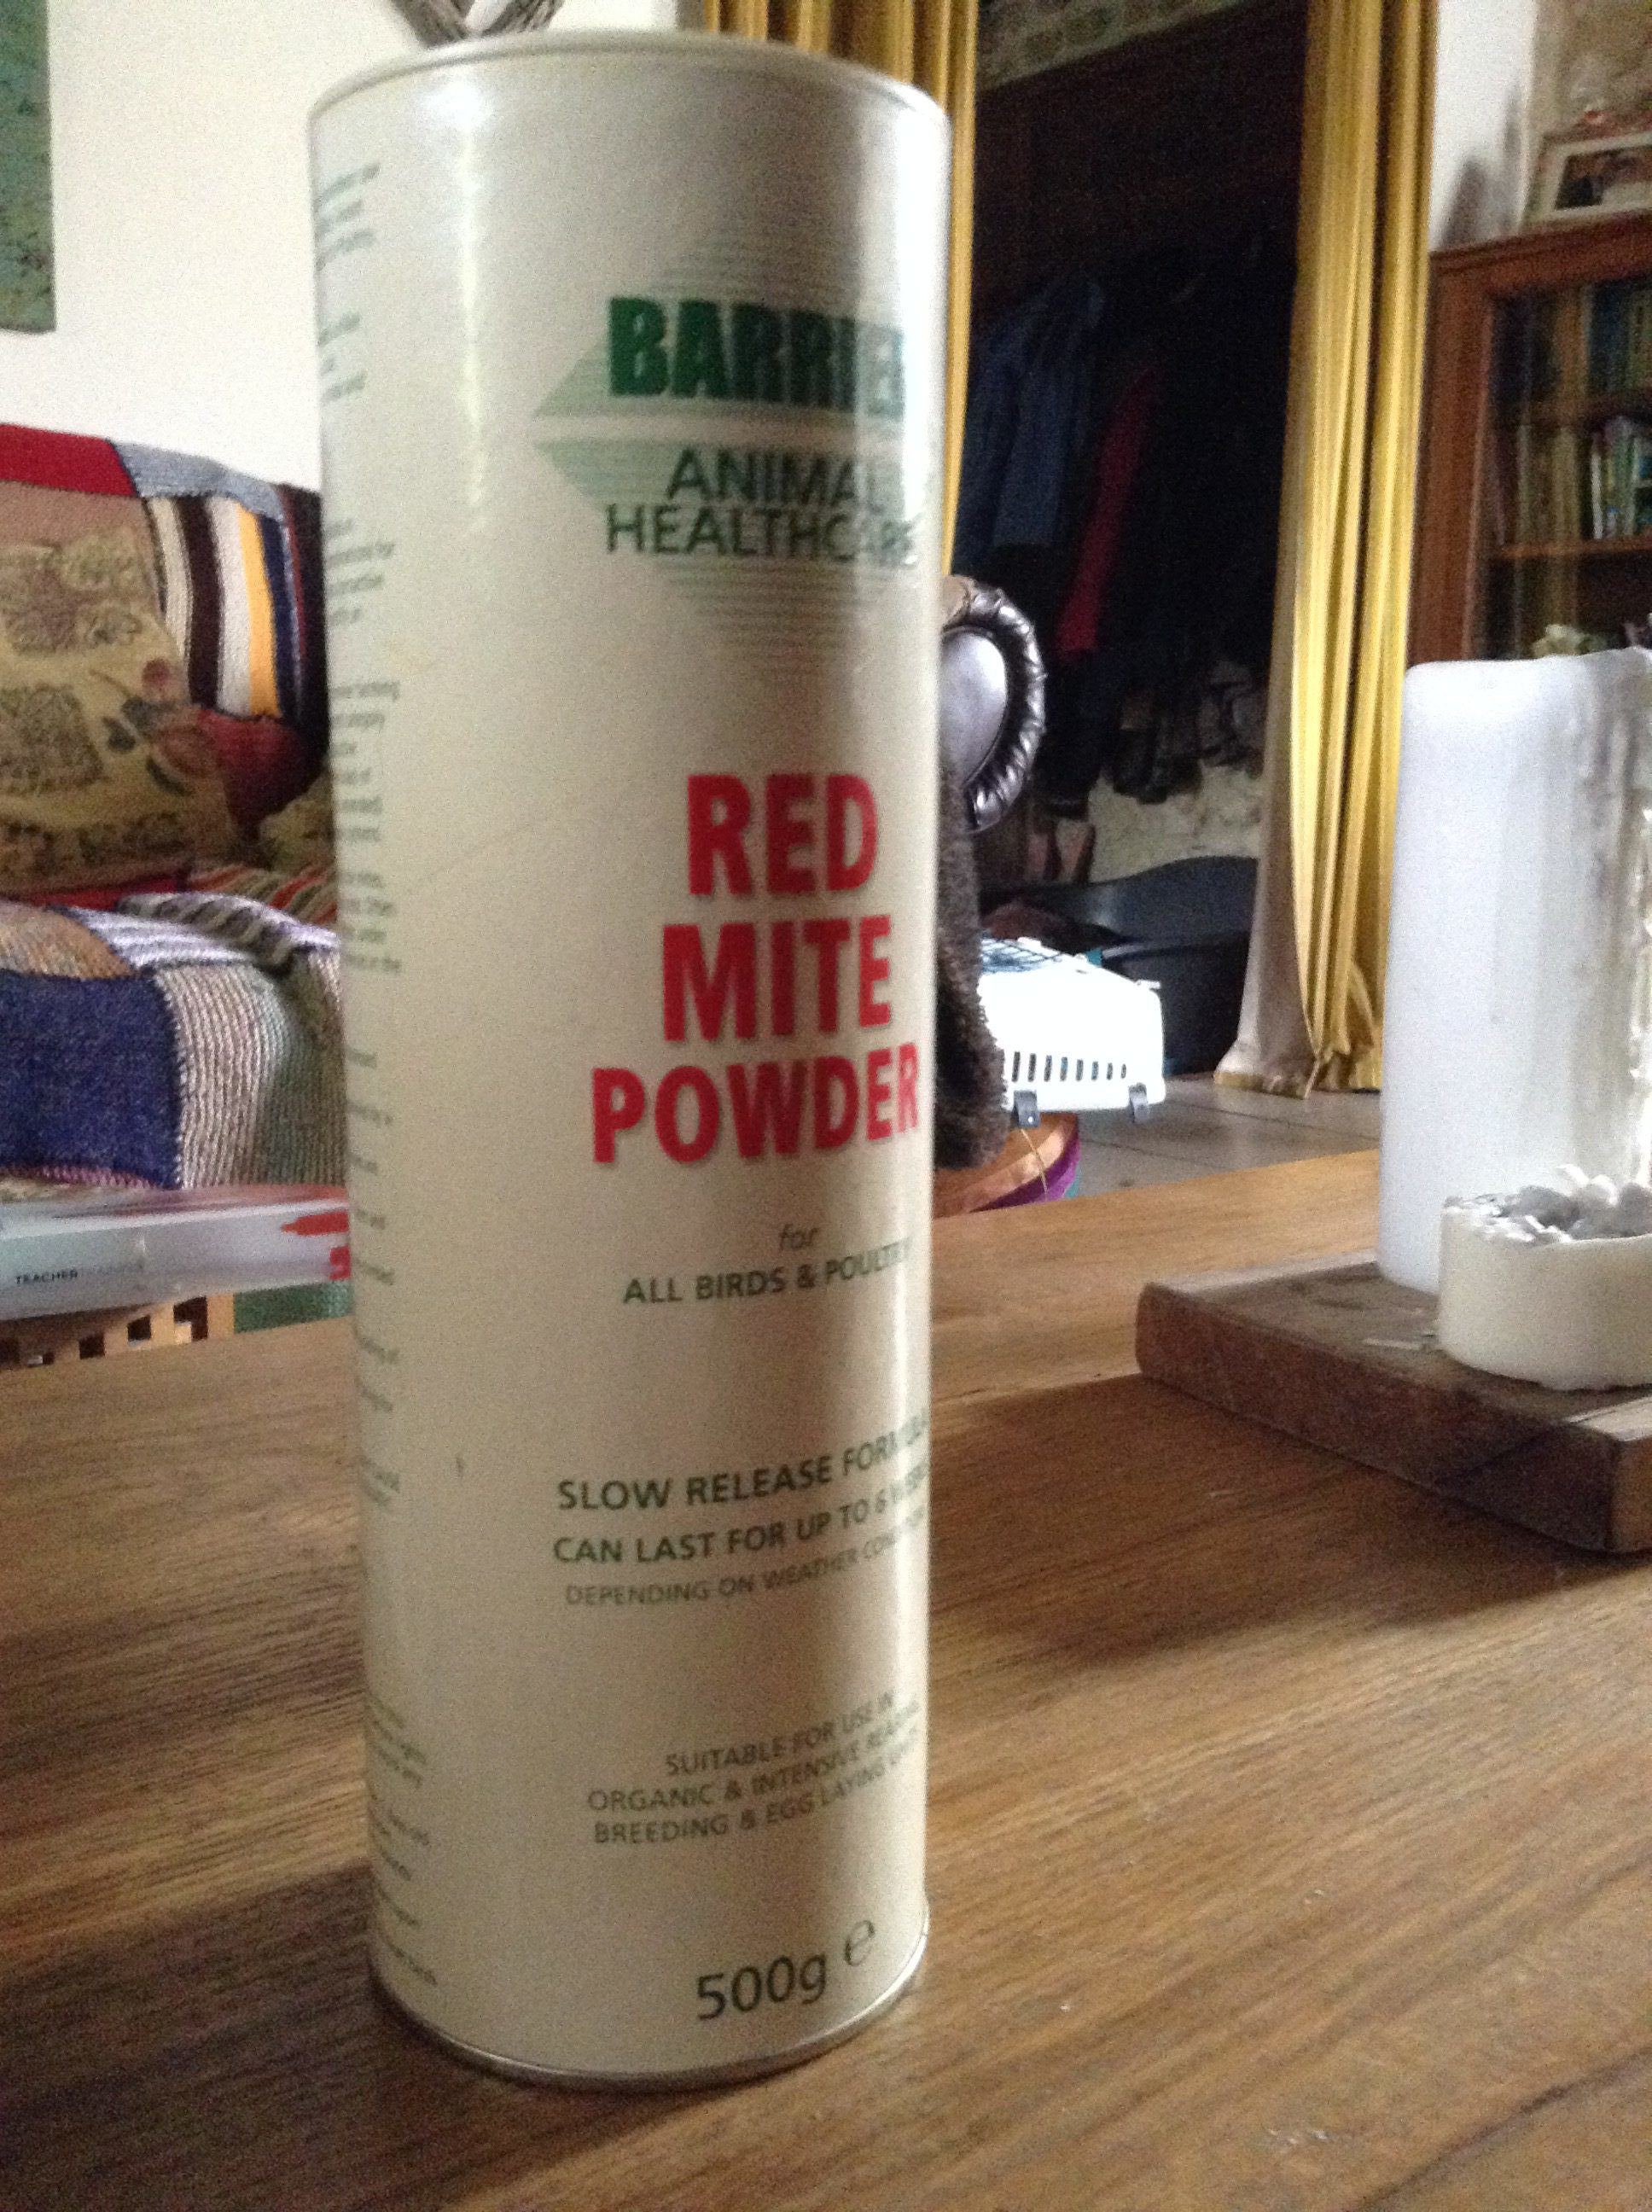 Red mite powder.